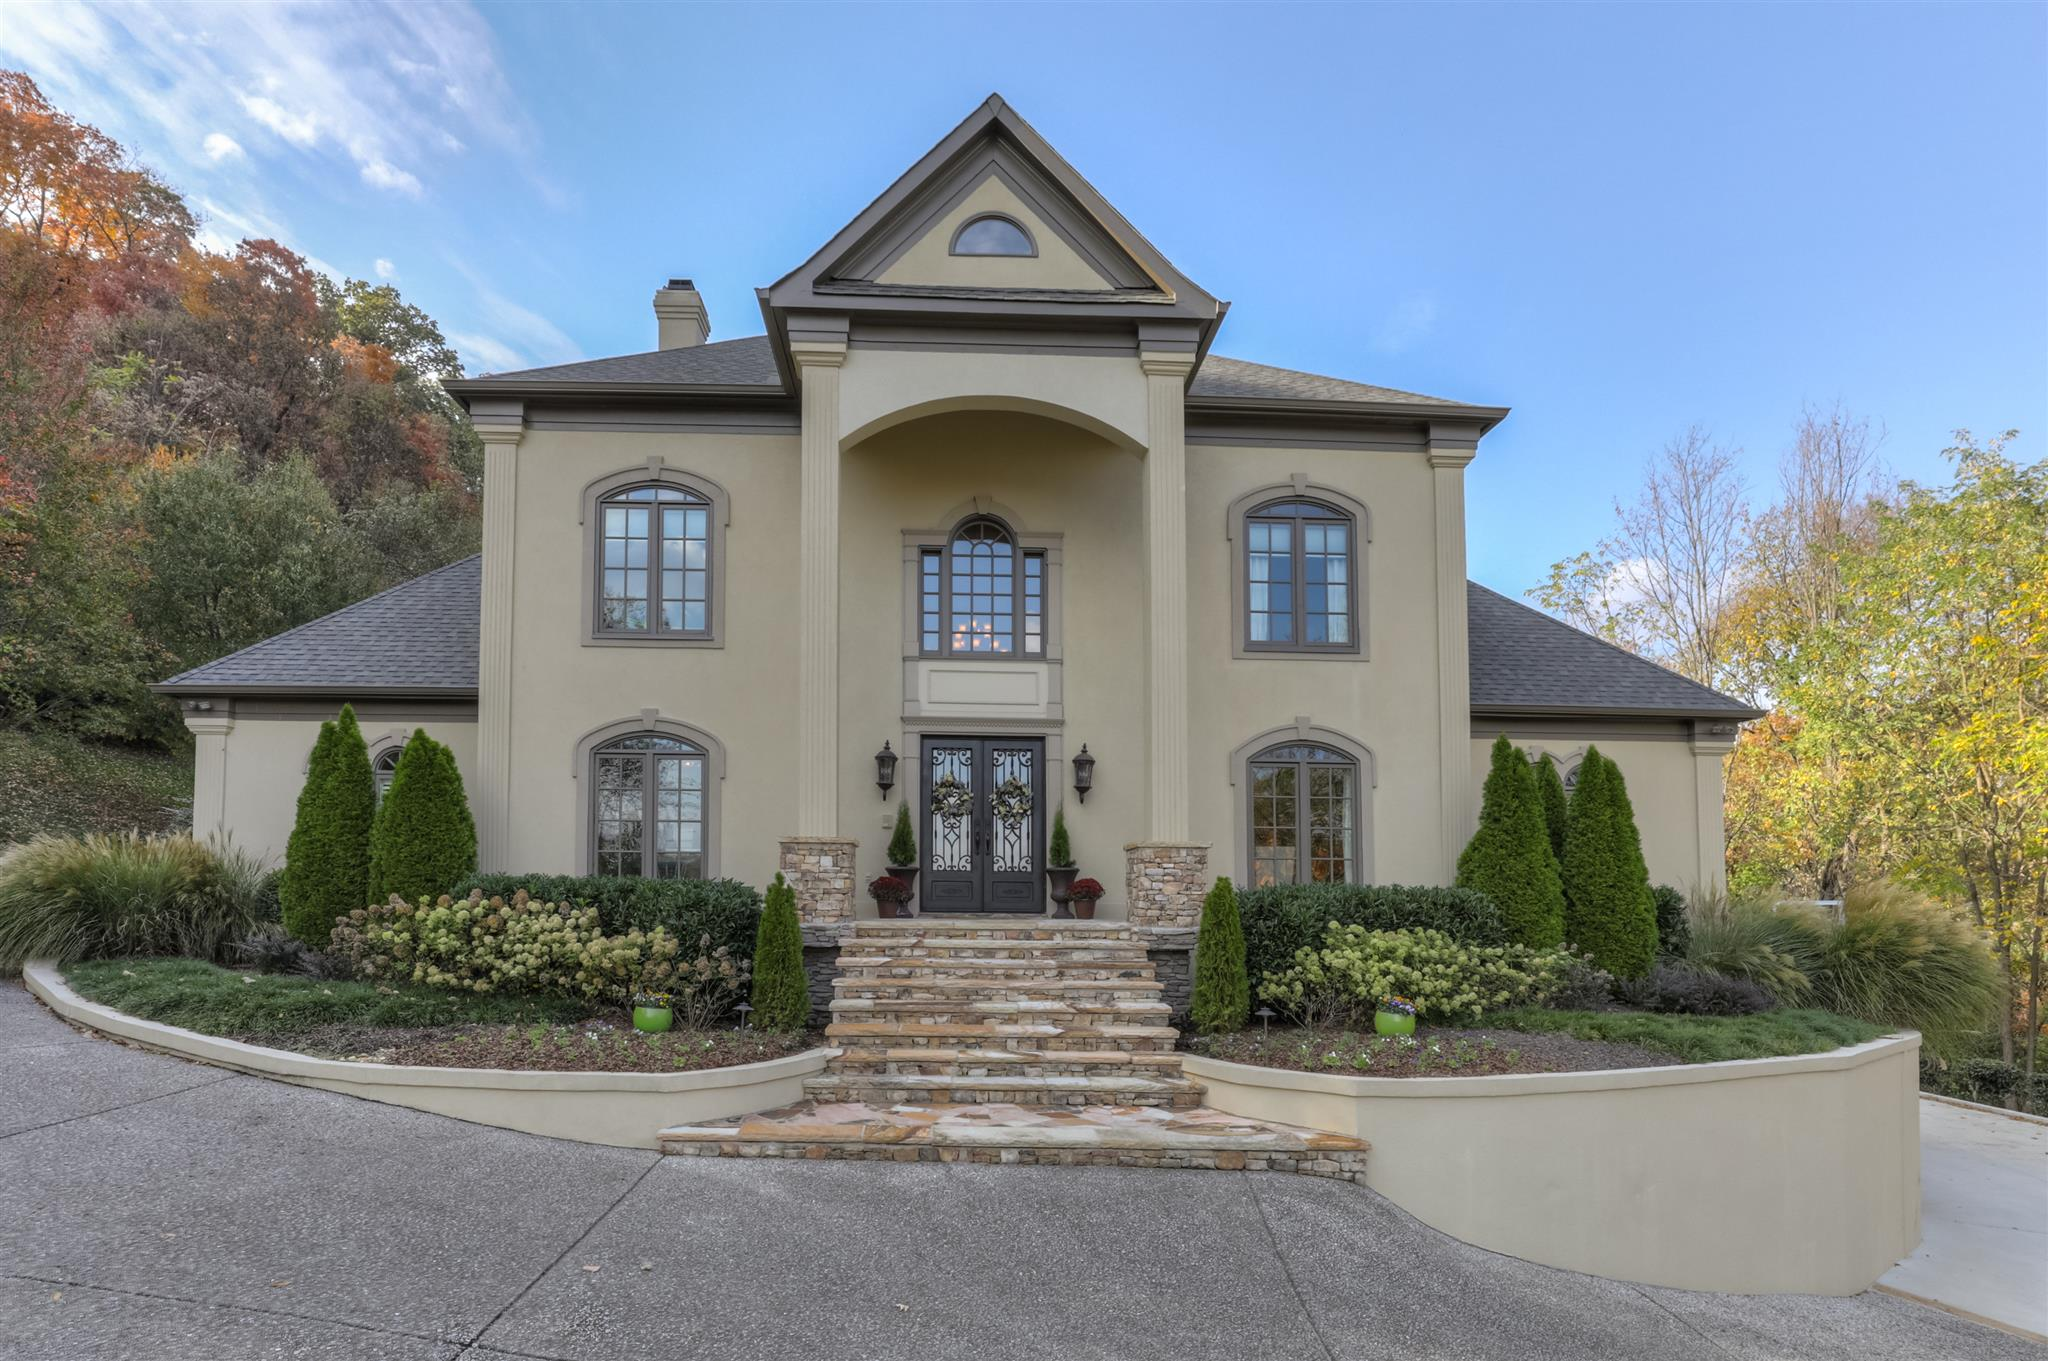 5216 Harpeth Ridge Dr, Brentwood, TN 37027